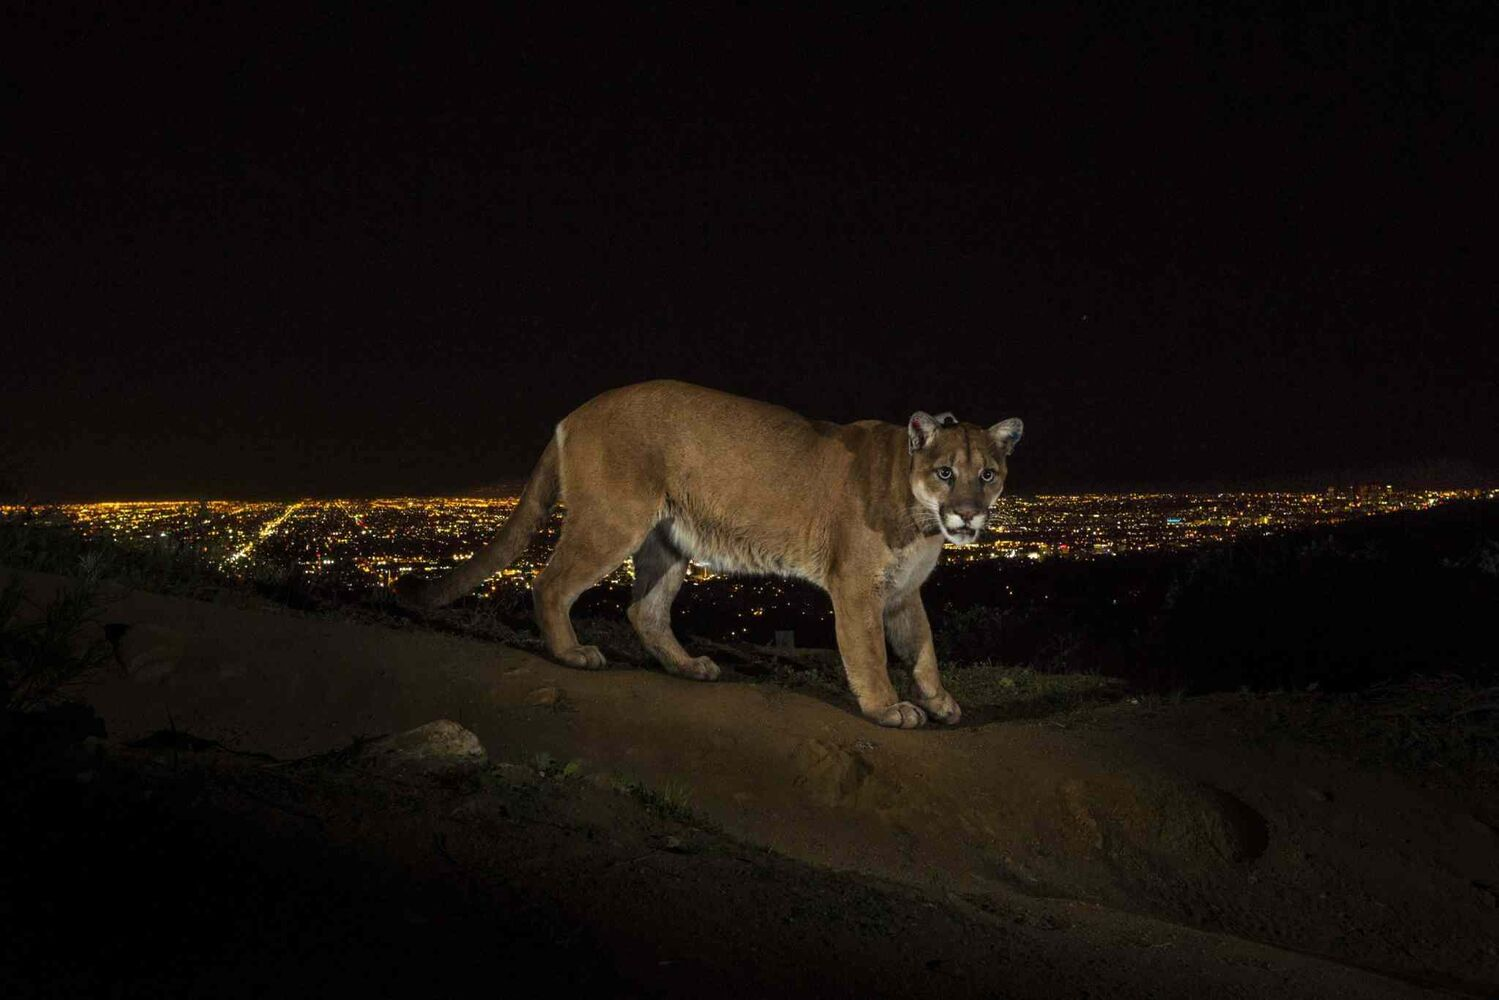 First prize in the Nature Stories category by Steve Winter of U.S.A.<p> A cougar walks a trail in Los Angeles' Griffith Park, captured by a camera trap on March 2, 2013. To reach the park, which has been the cougar's home for the last two years, it had to cross two of the busiest highways in the U.S.  (Steve Winter, for National Geographic)